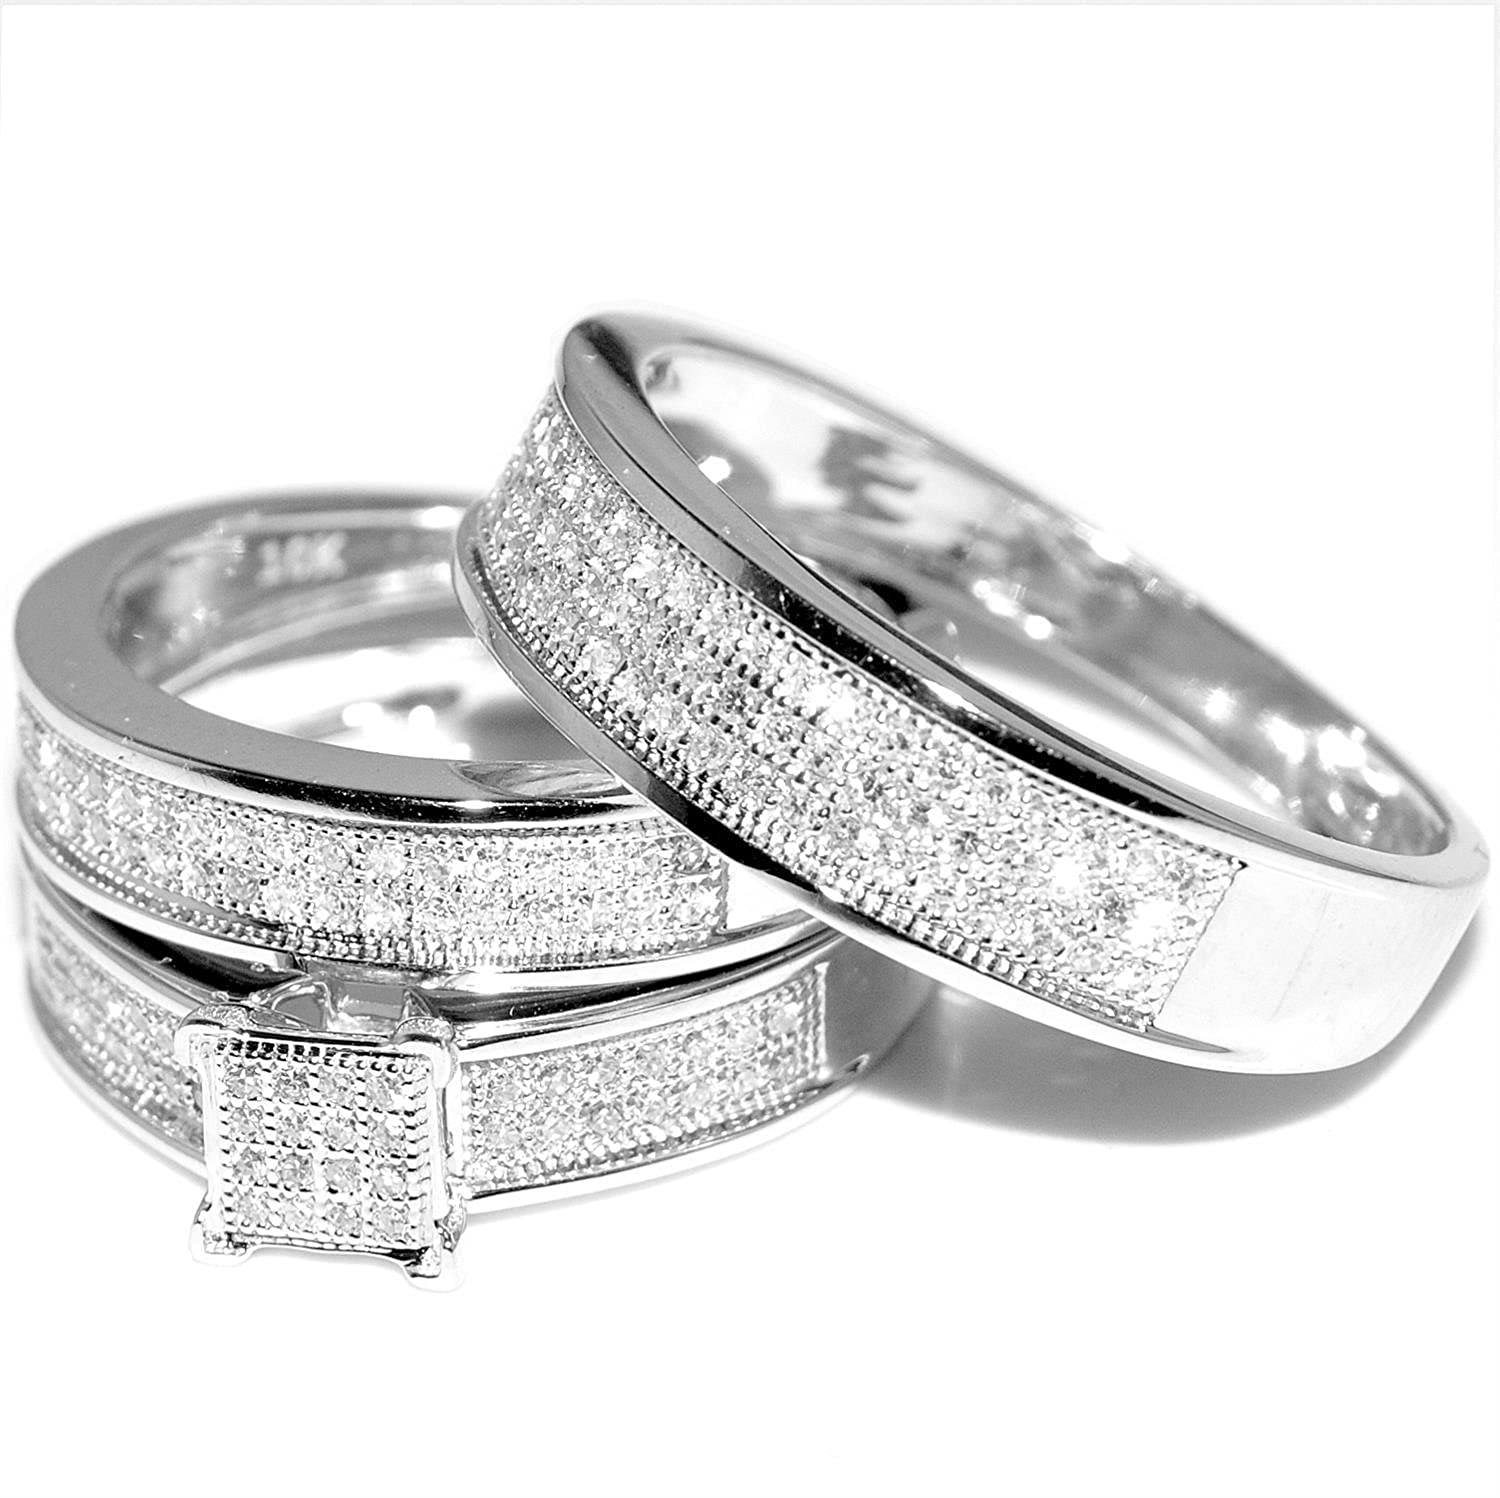 white gold trio wedding set mens womens wedding rings matching 040cttw diamondamazoncom - Wedding Rings Sets For Women